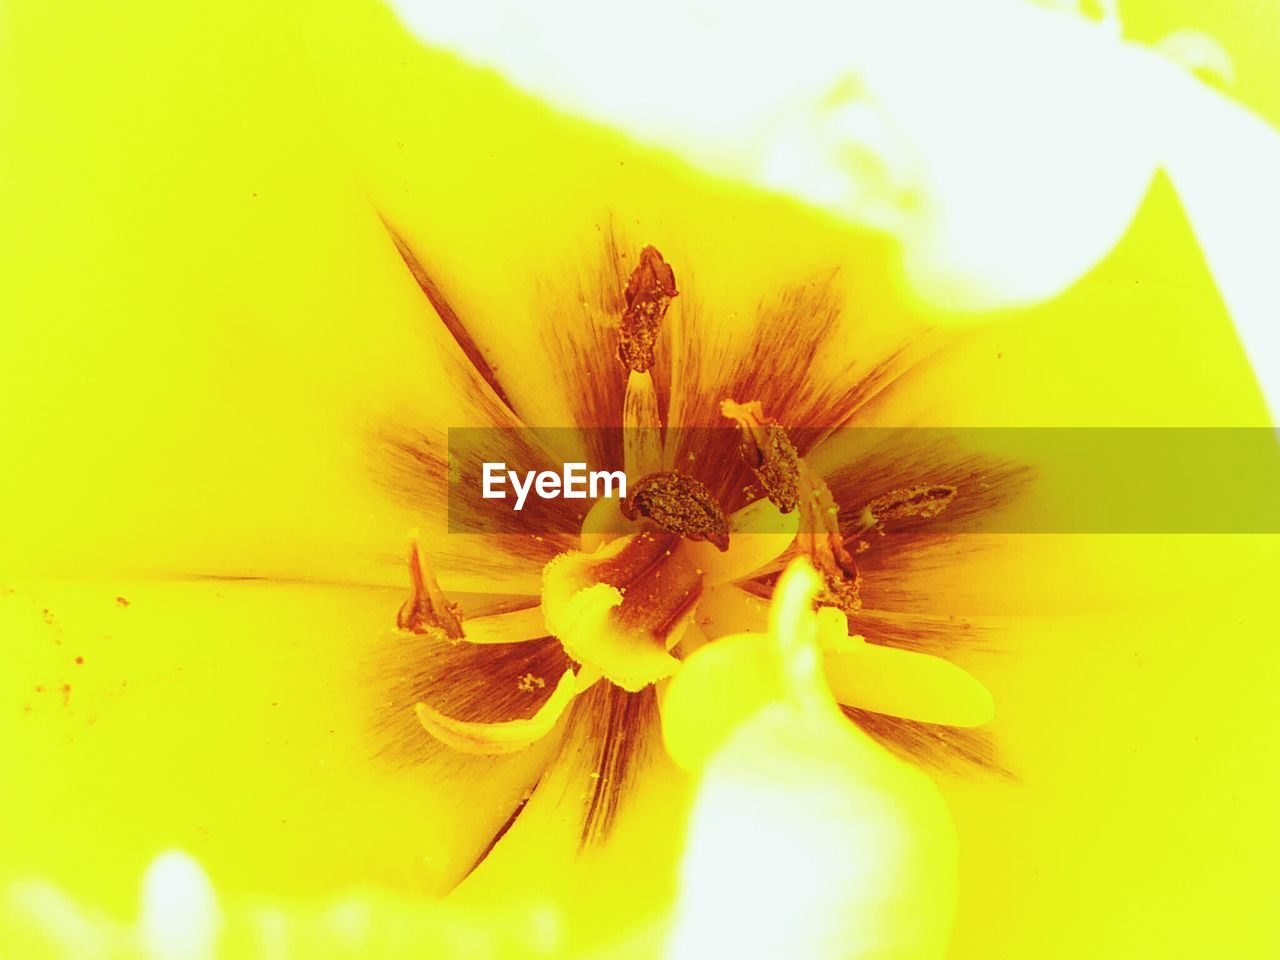 flower, petal, fragility, flower head, freshness, beauty in nature, nature, pollen, yellow, close-up, stamen, no people, growth, plant, outdoors, day